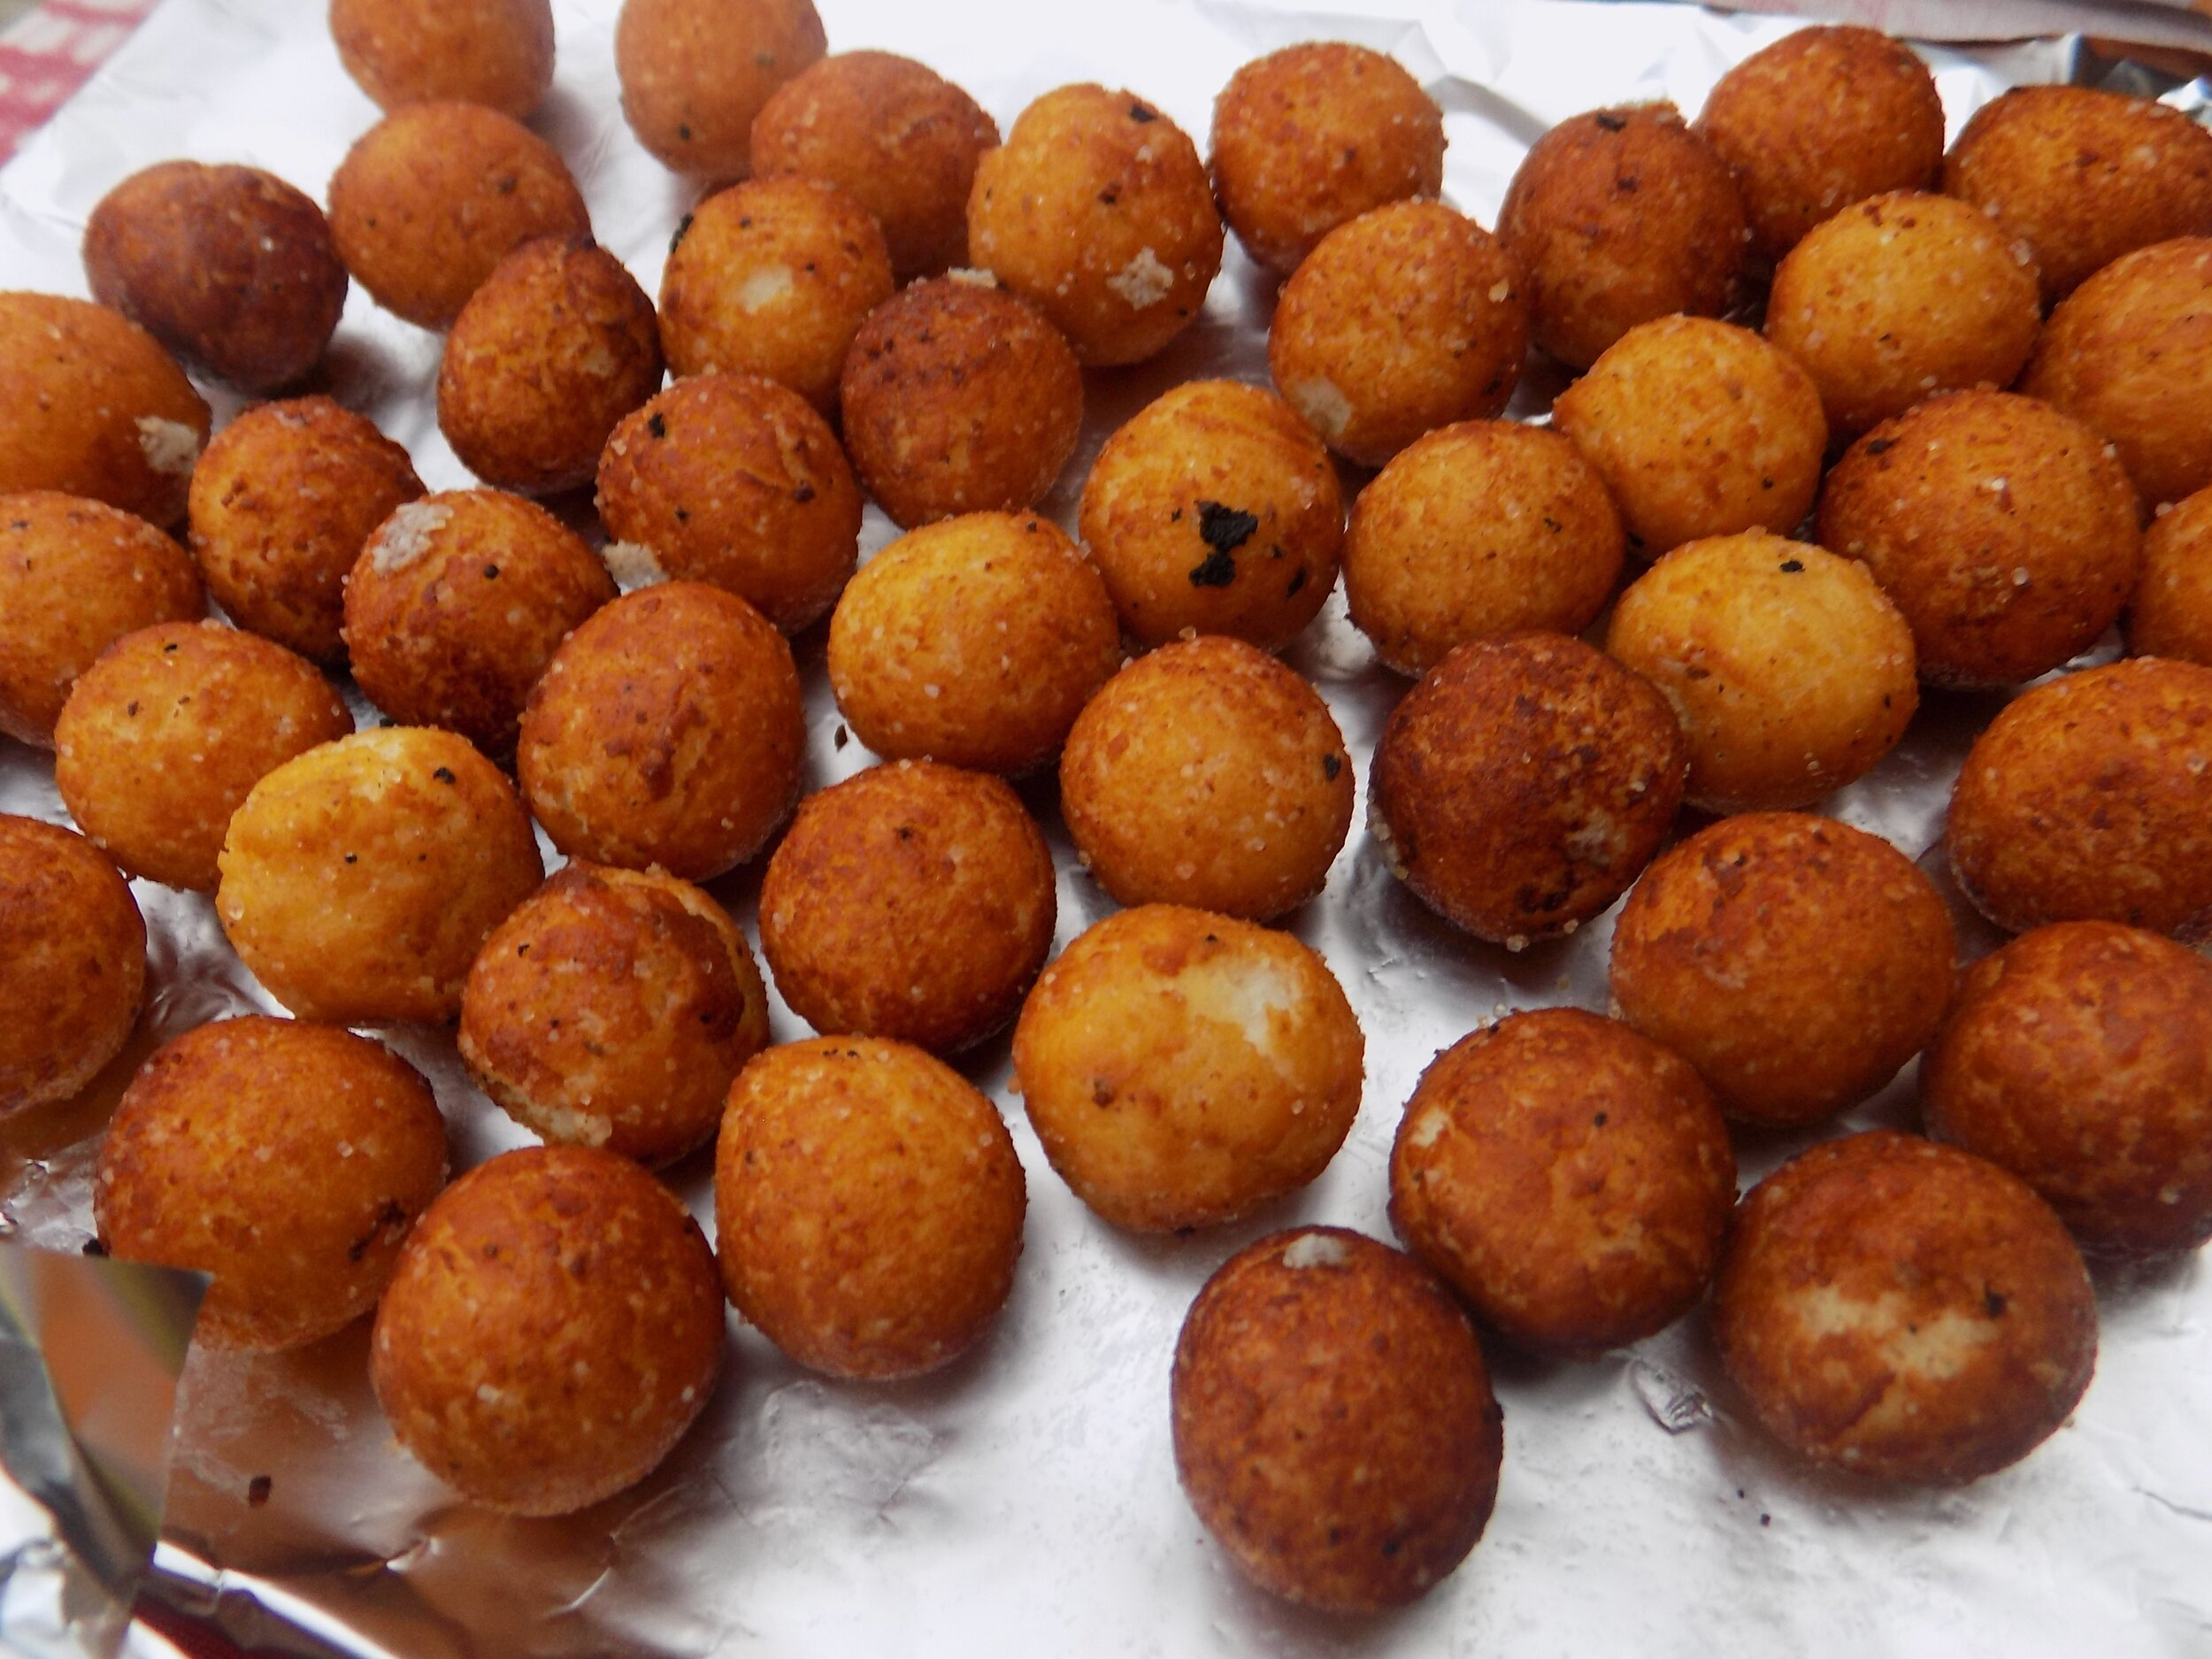 Gulisua - These adorable are tiny round balls of milk with sugar rolled into a ball and fried. They are really sweet, kinda like white Maltesers, but without the chocolate. If you mistook them for puff-puff, you'd definitely be rudely shocked.